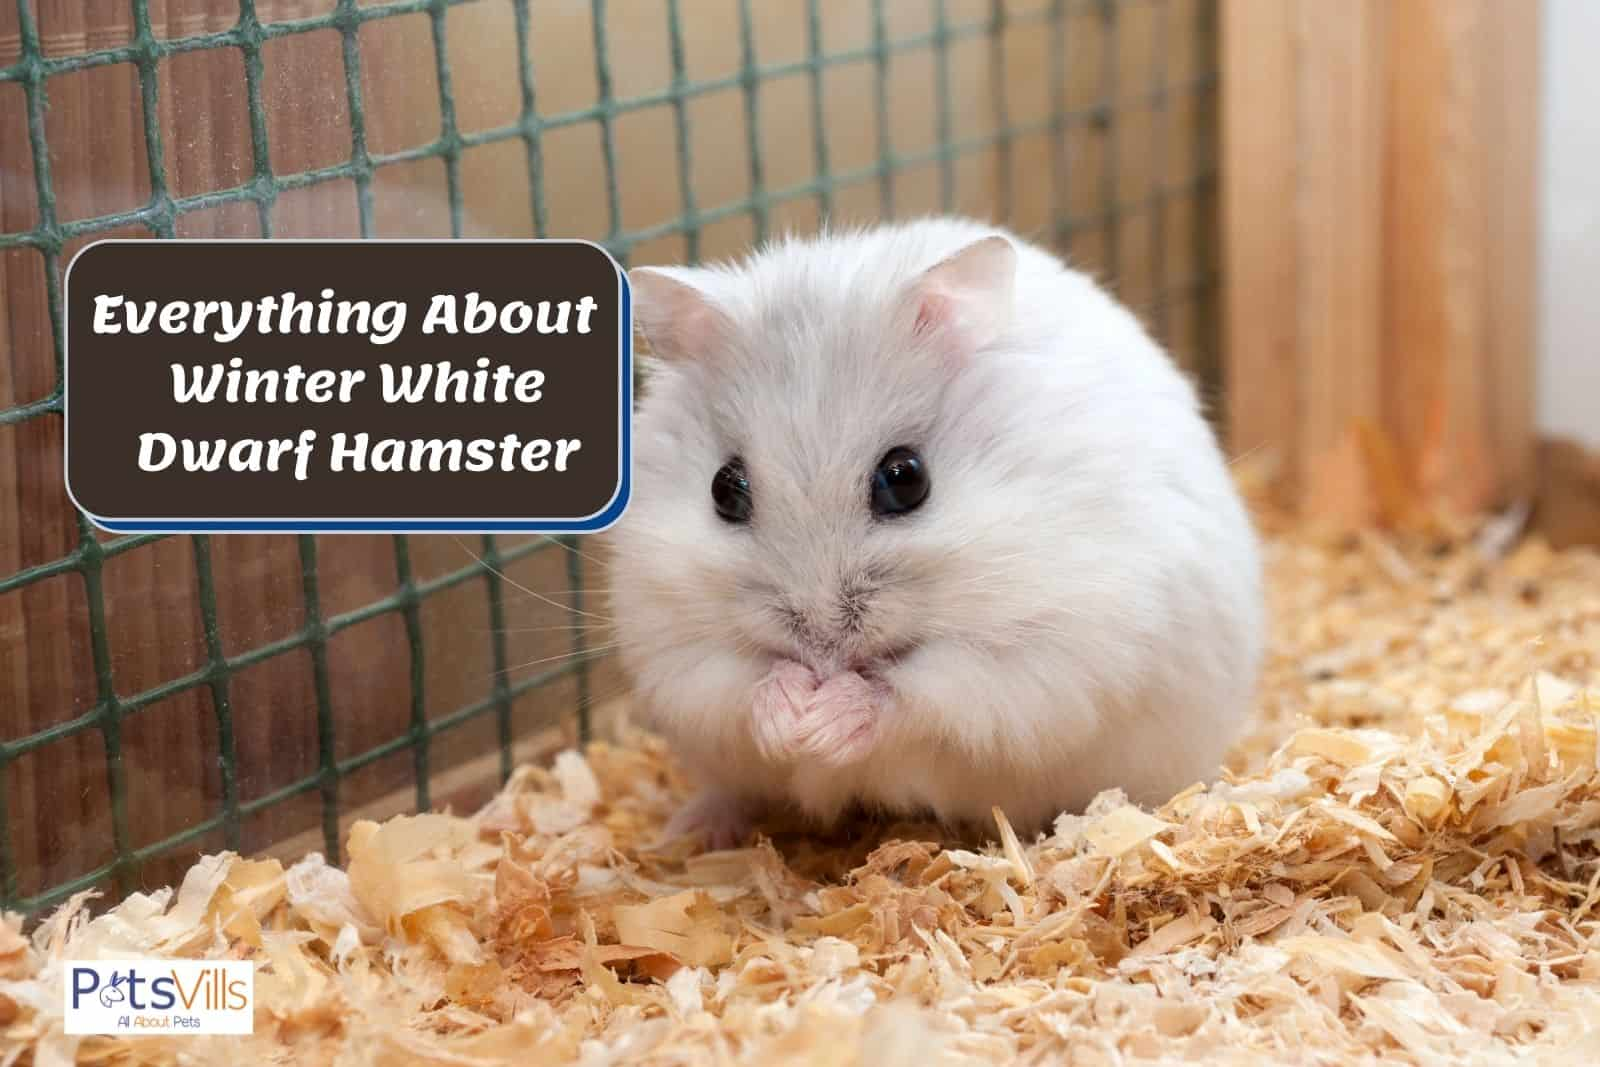 a cute winter white dwarf hamster in his cage